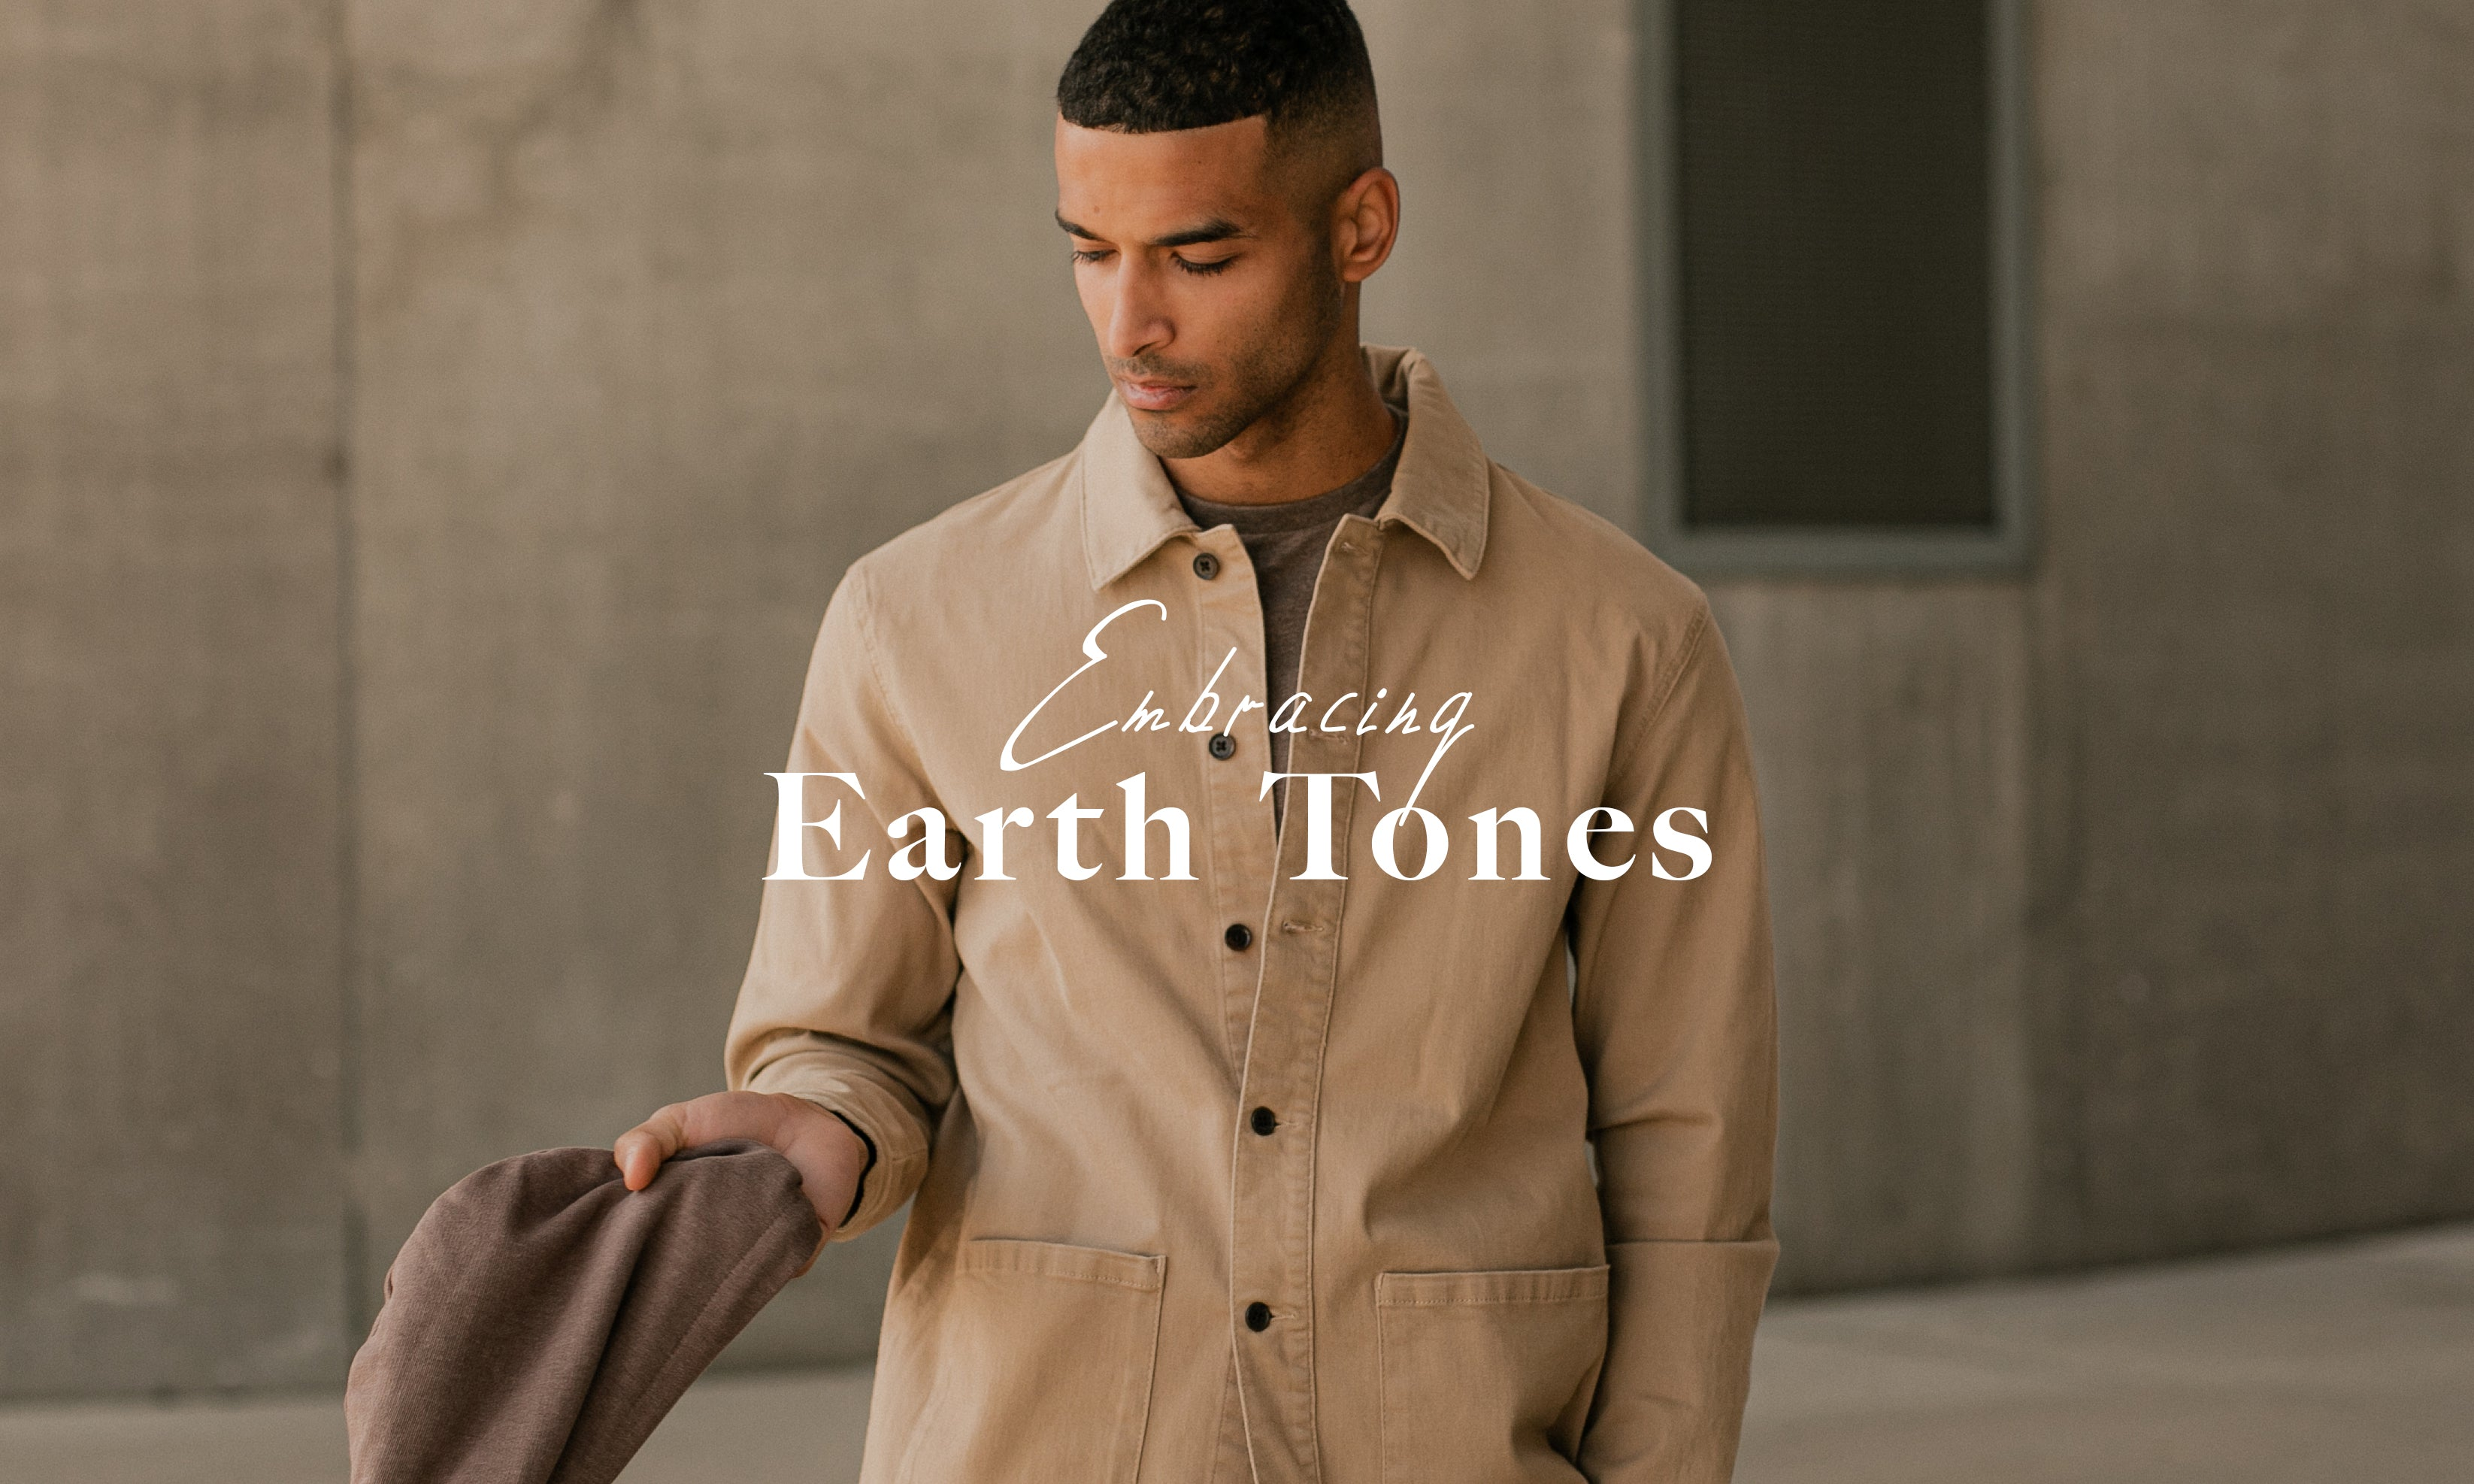 Embracing Earth Tones - An Autumn Editorial